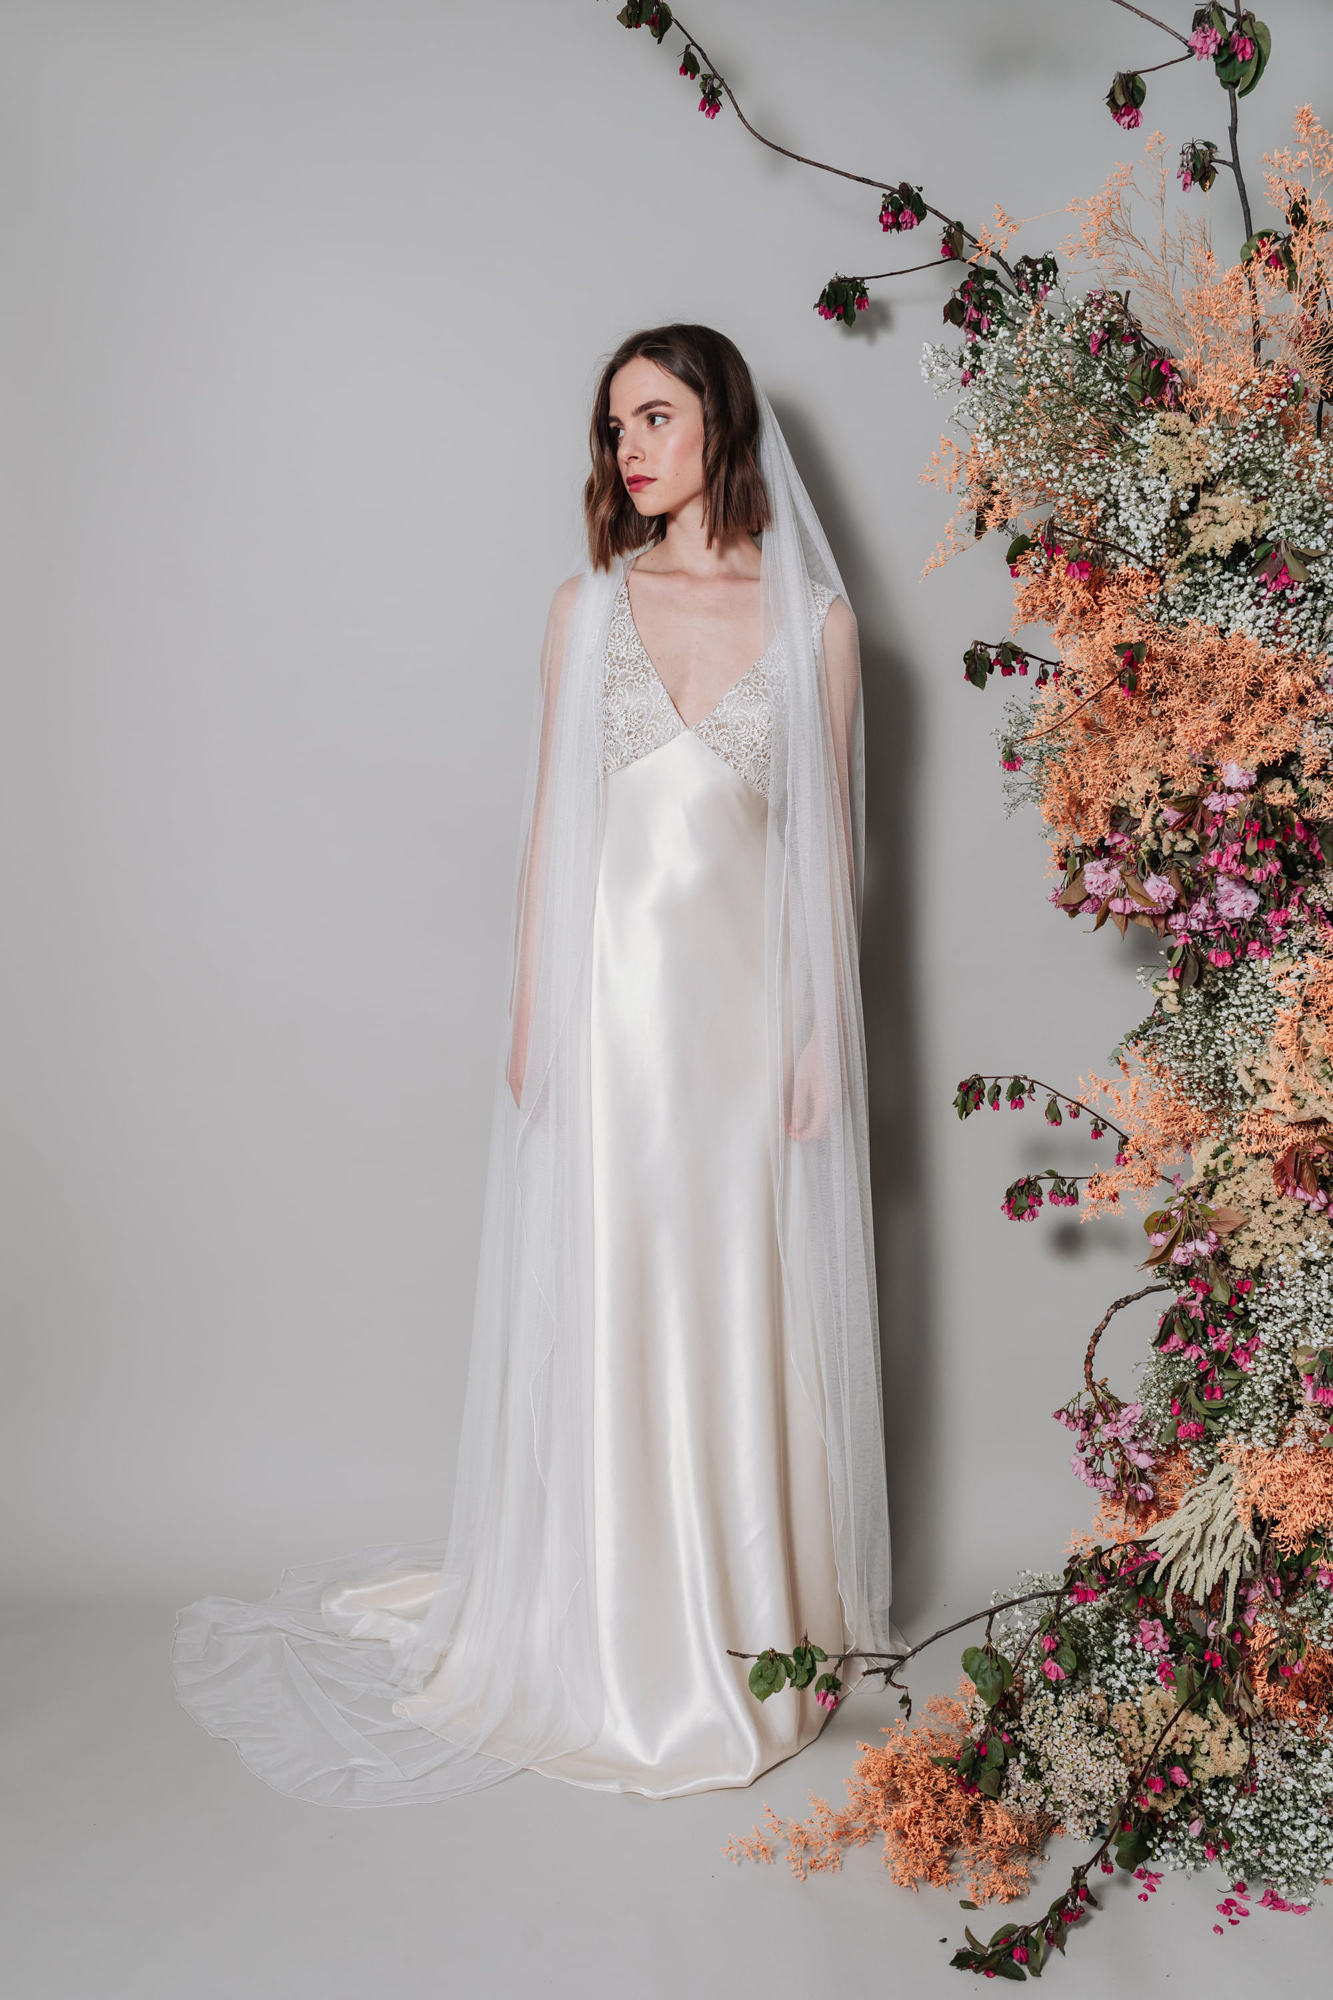 Kate-Beaumont-Sheffield-Picot-Edge-Silky-Tulle-Ethereal-Veil-12.jpg